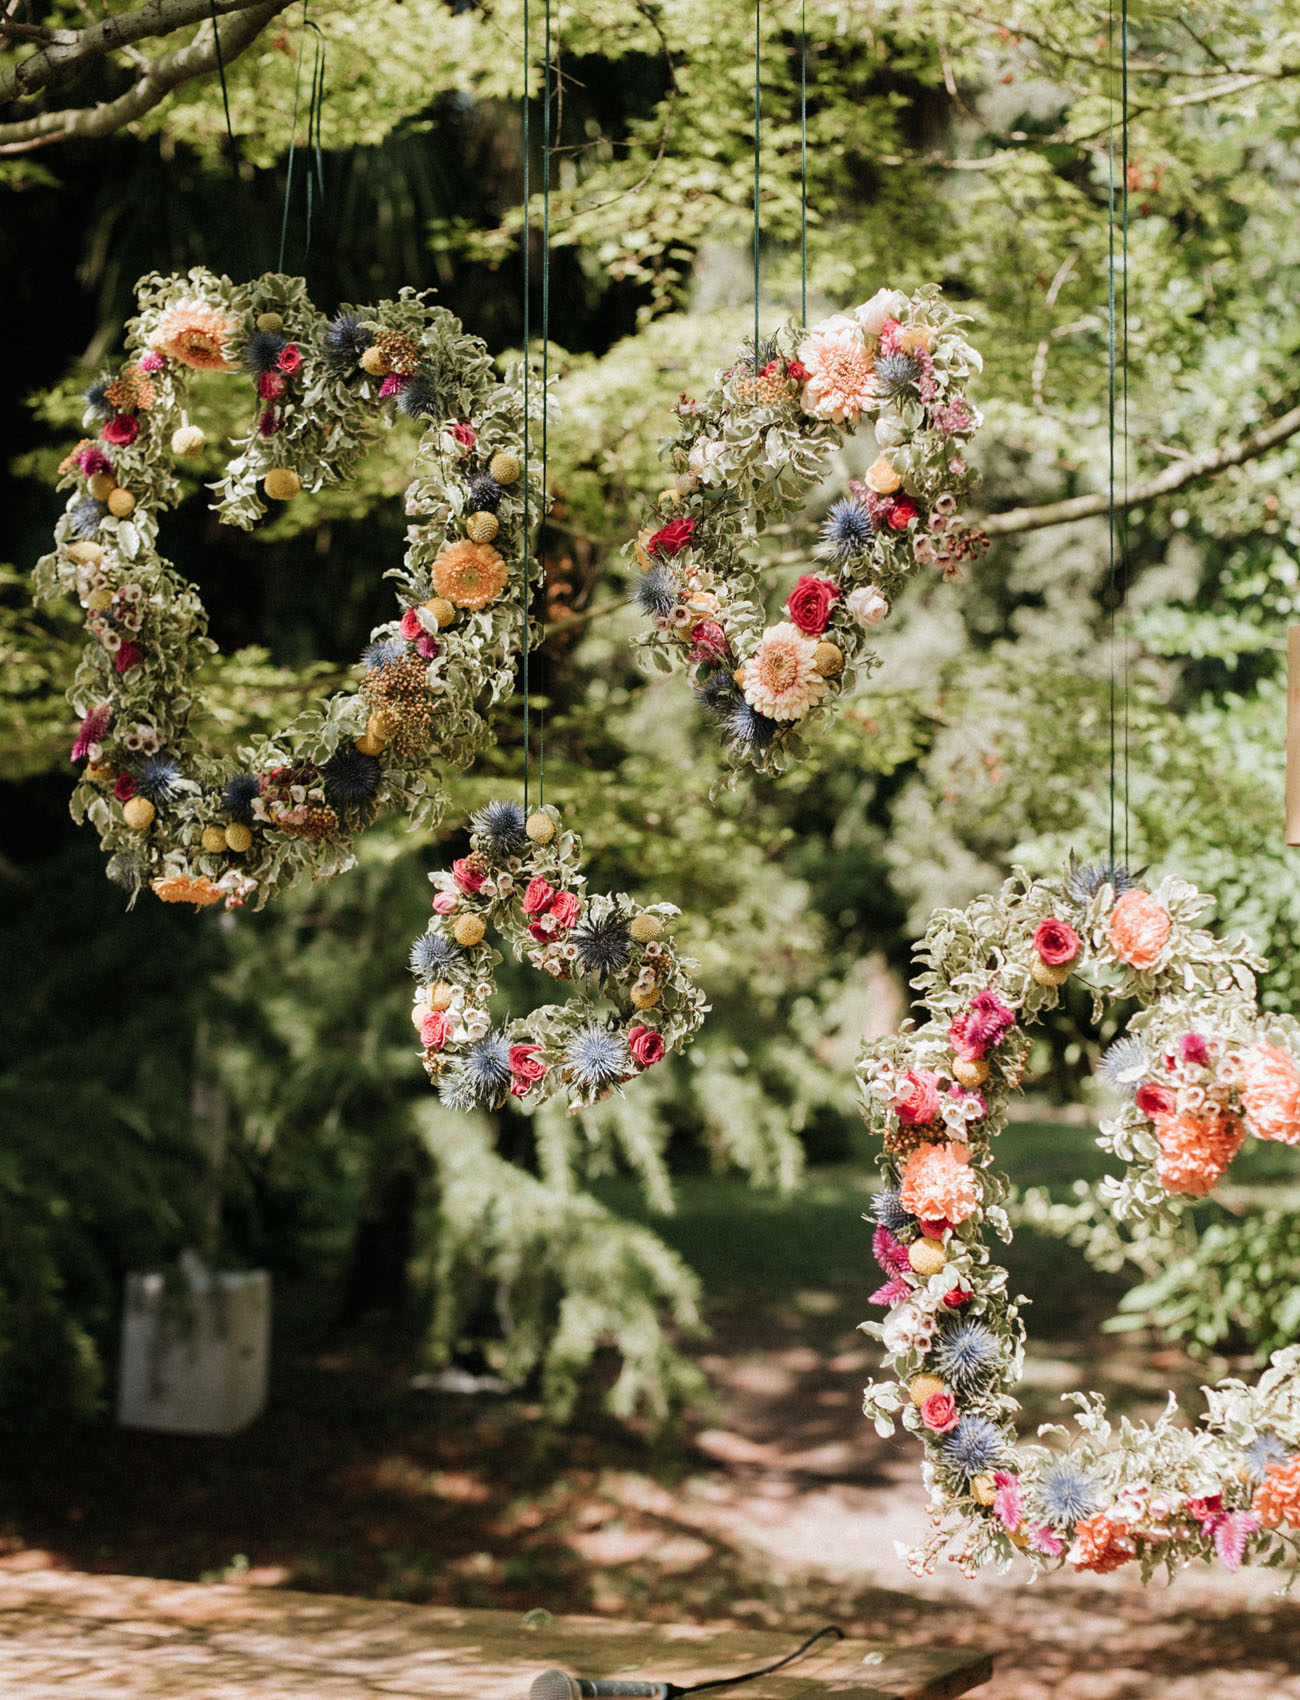 I love these pretty colorful hearts of greenery and bright flowers